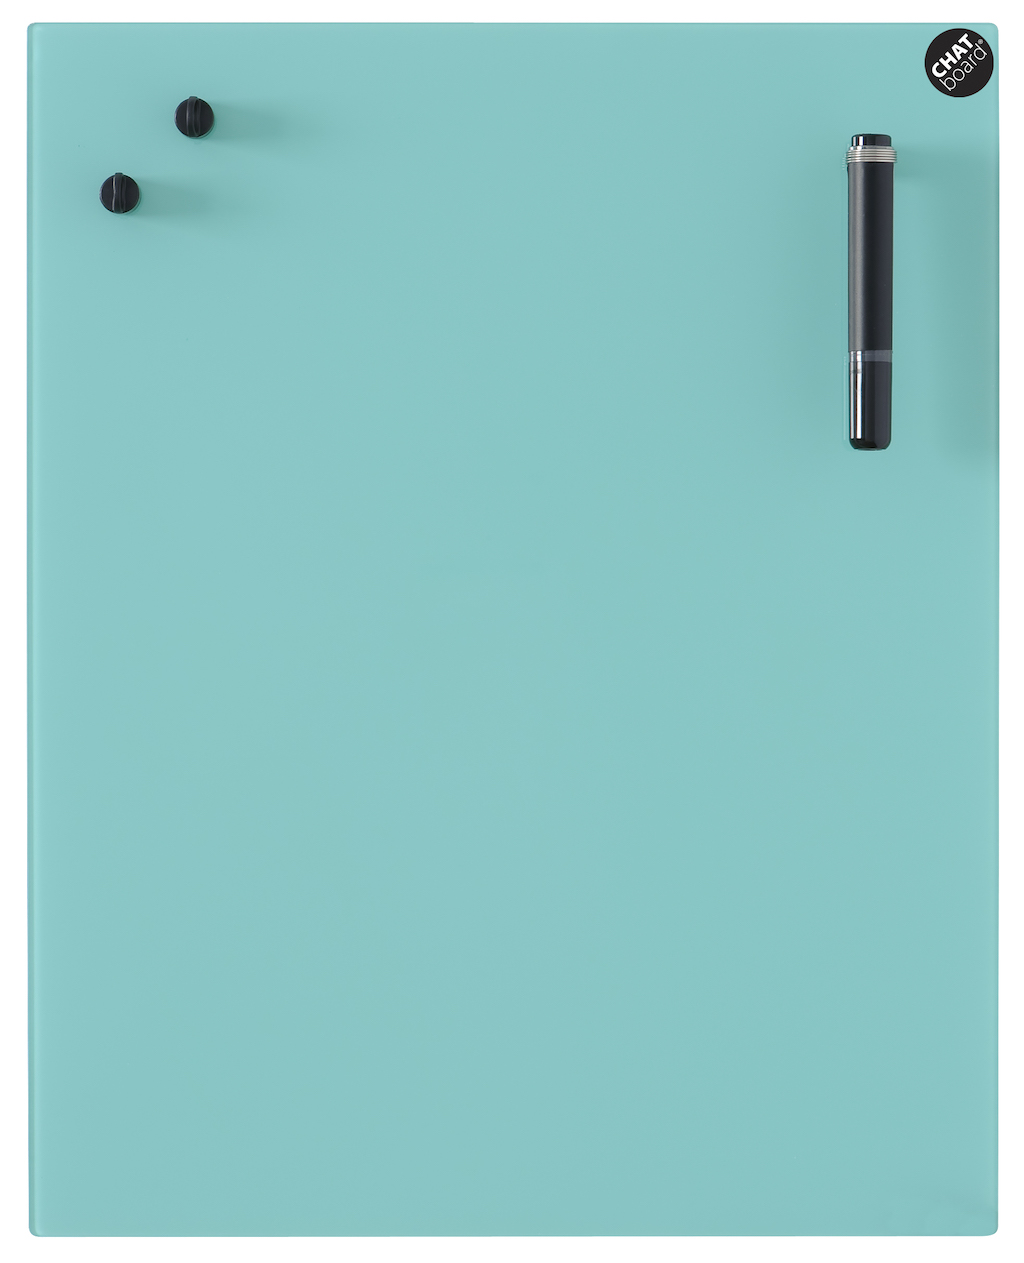 CHAT BOARD® – Turquoise